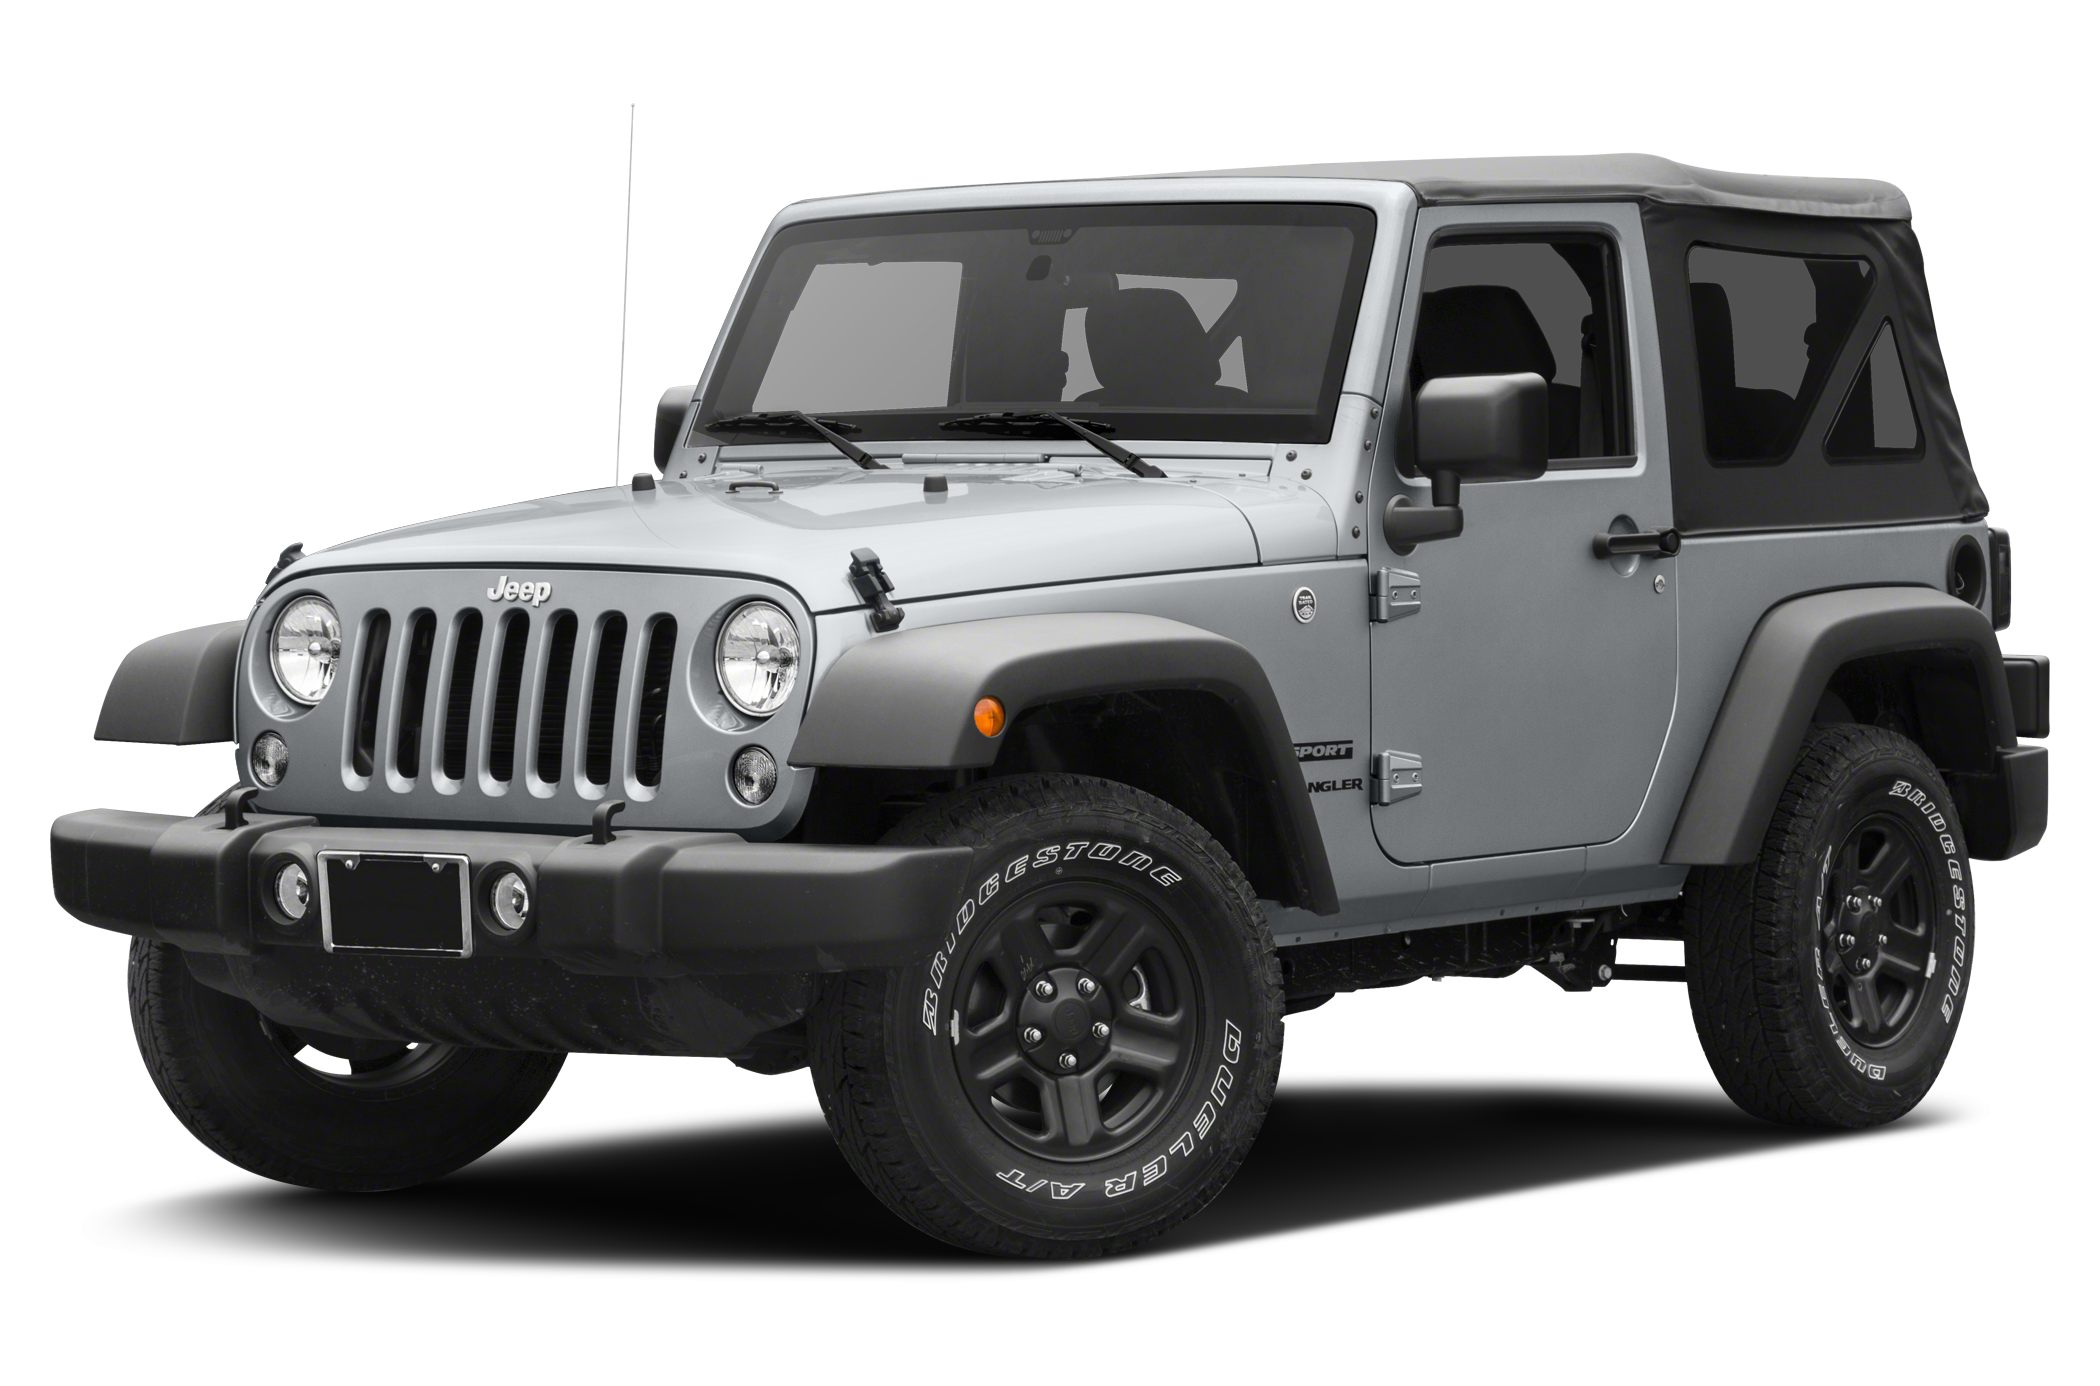 Jeep Wrangler Sport Black Mountain Ranger 3.6L Automatic